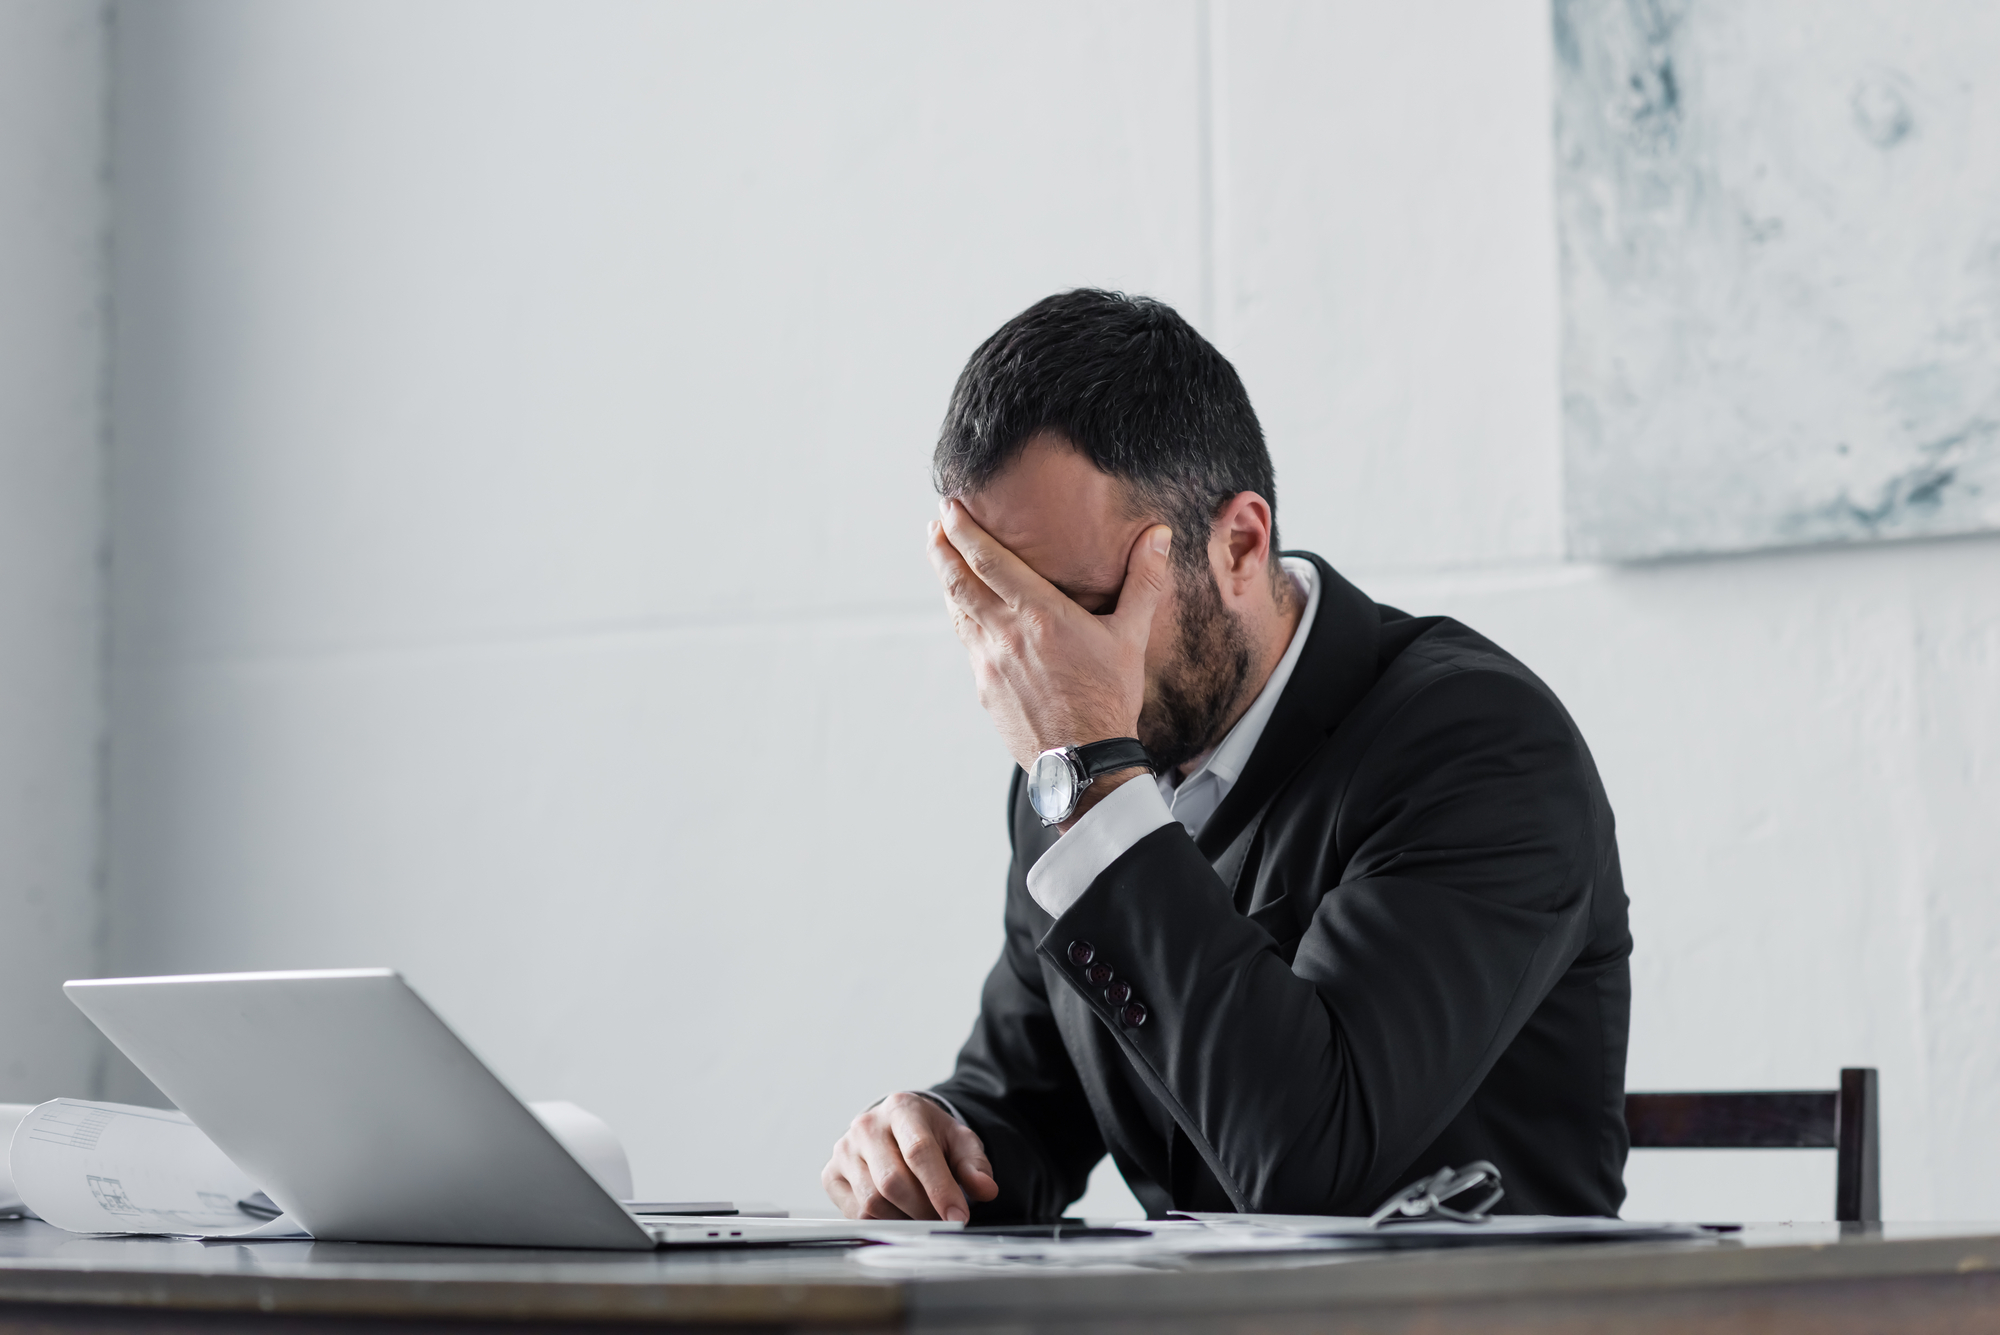 Upset businessman holding hand on face while sitting at workplace